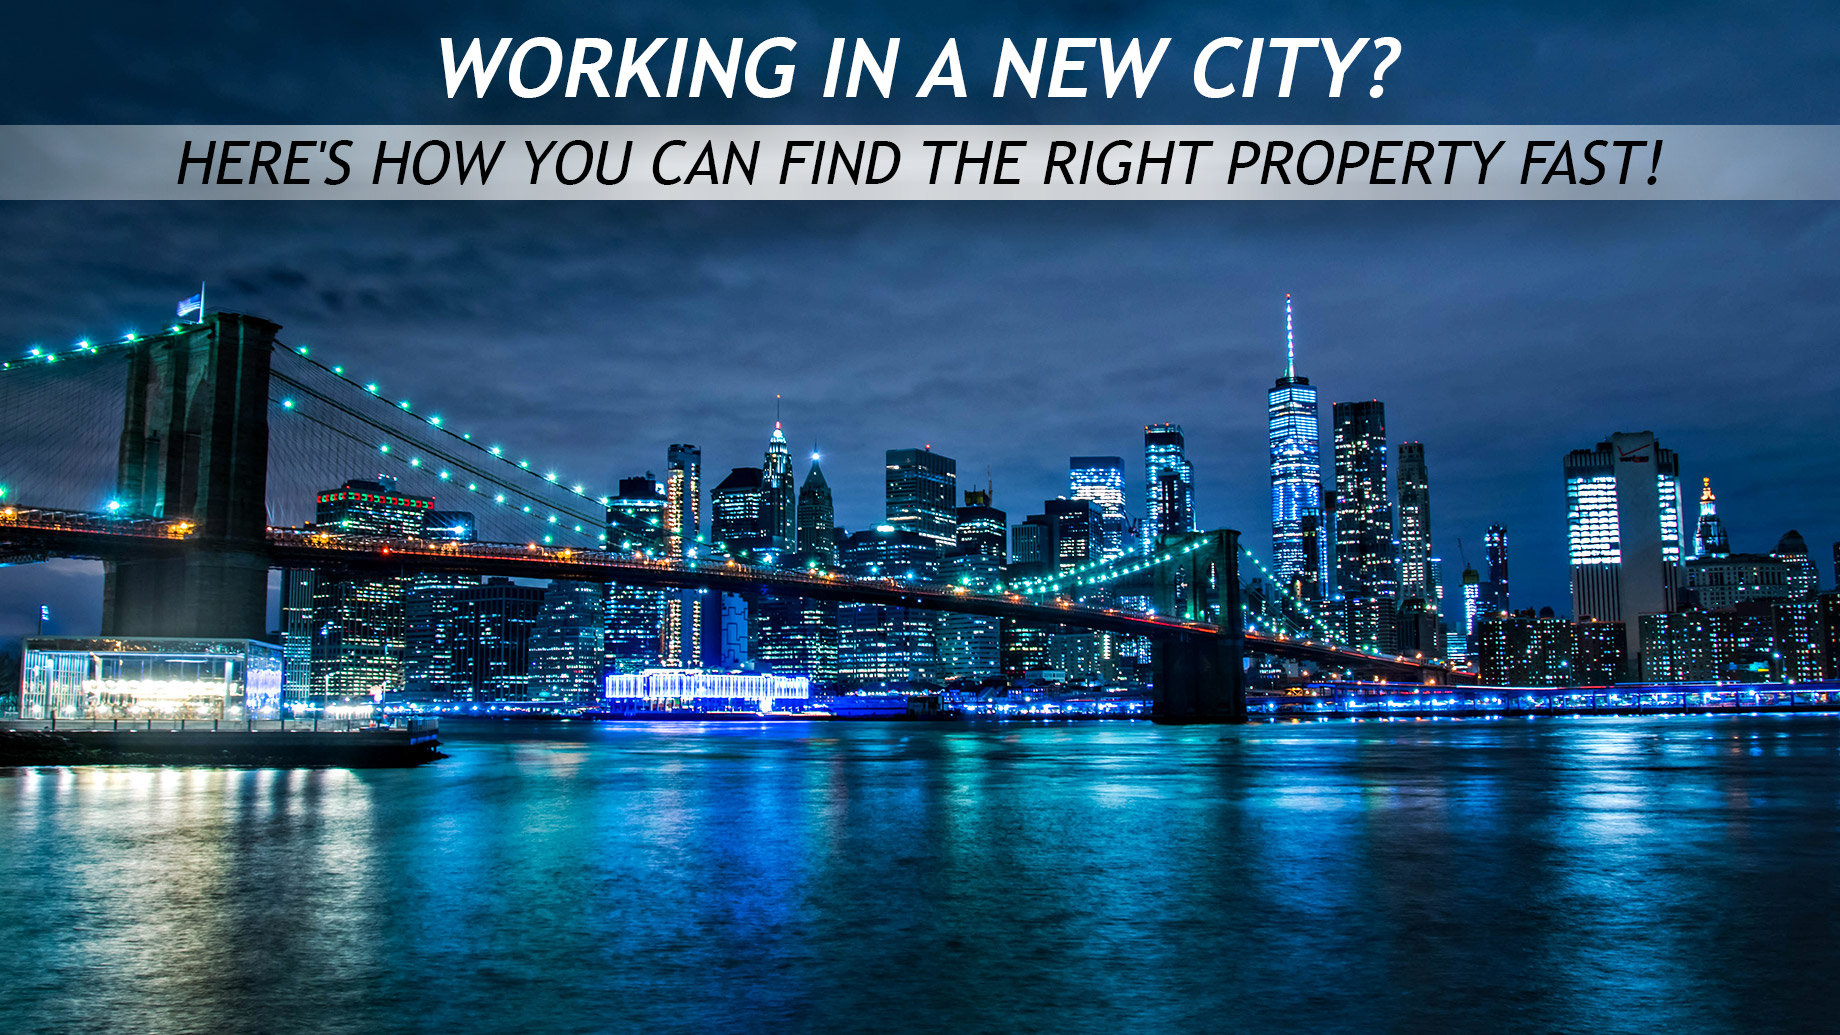 Working In A New City? Here's How You Can Find The Right Property Fast!